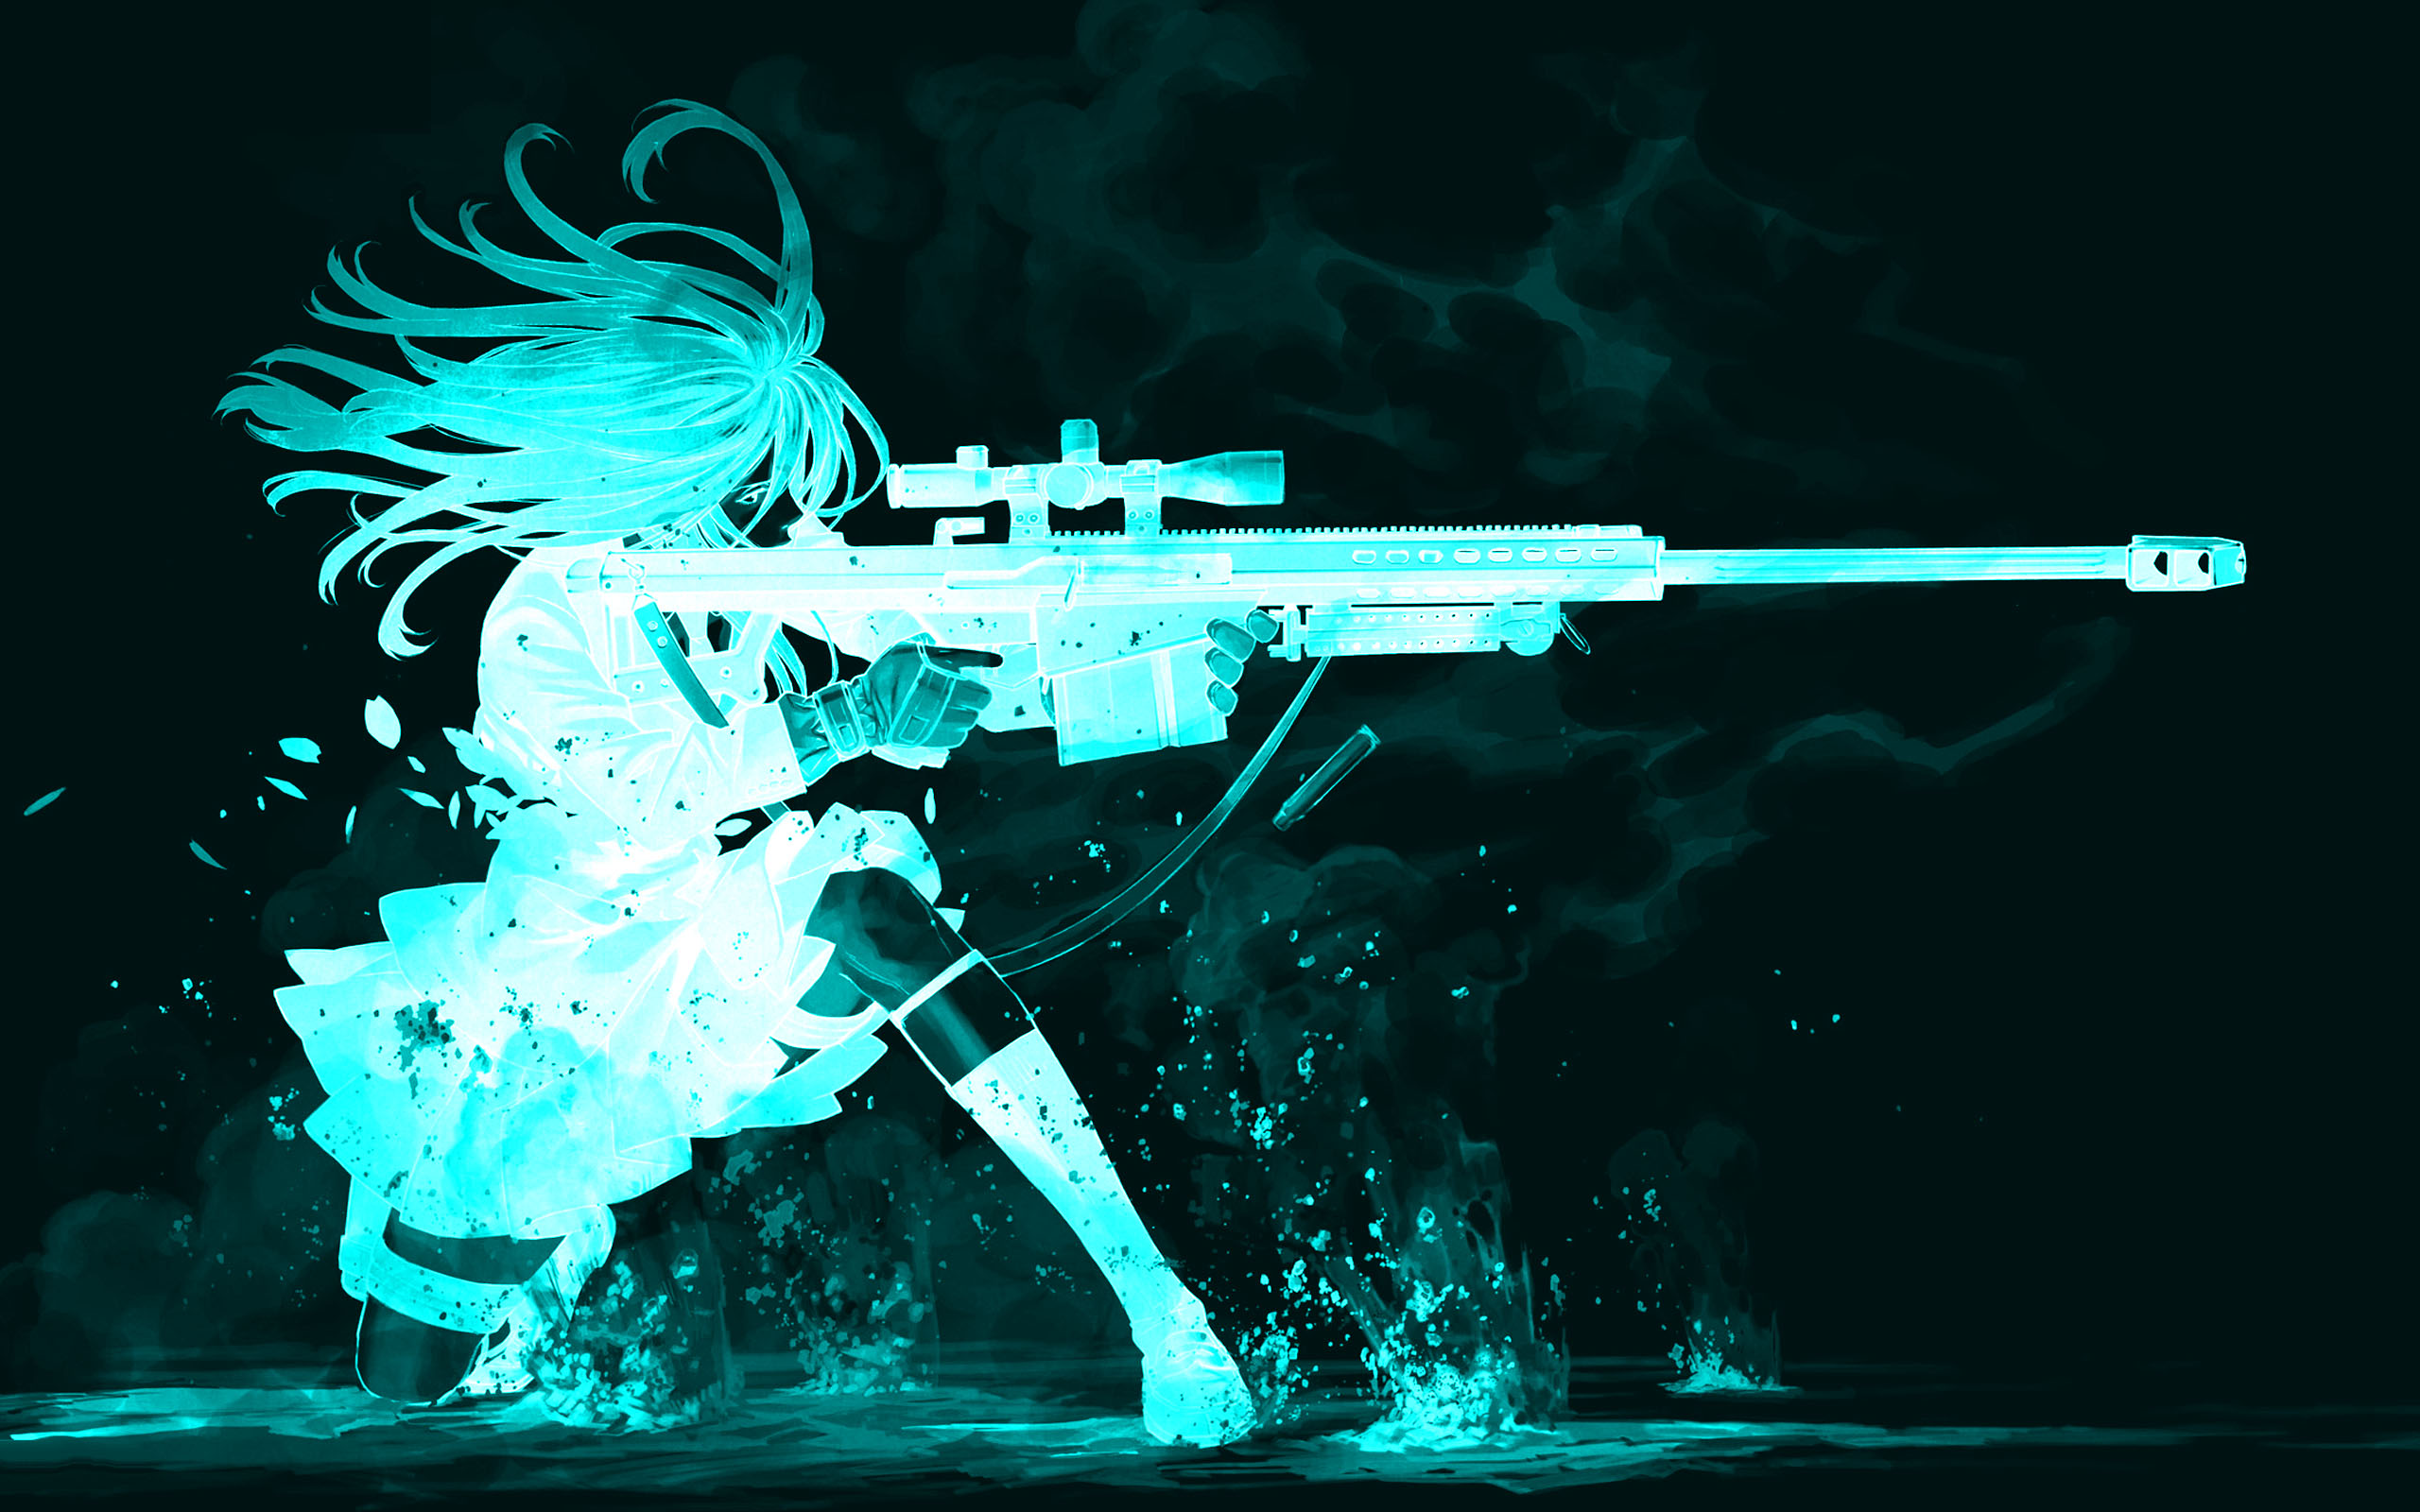 Anime Gun Wallpaper 2560x1600